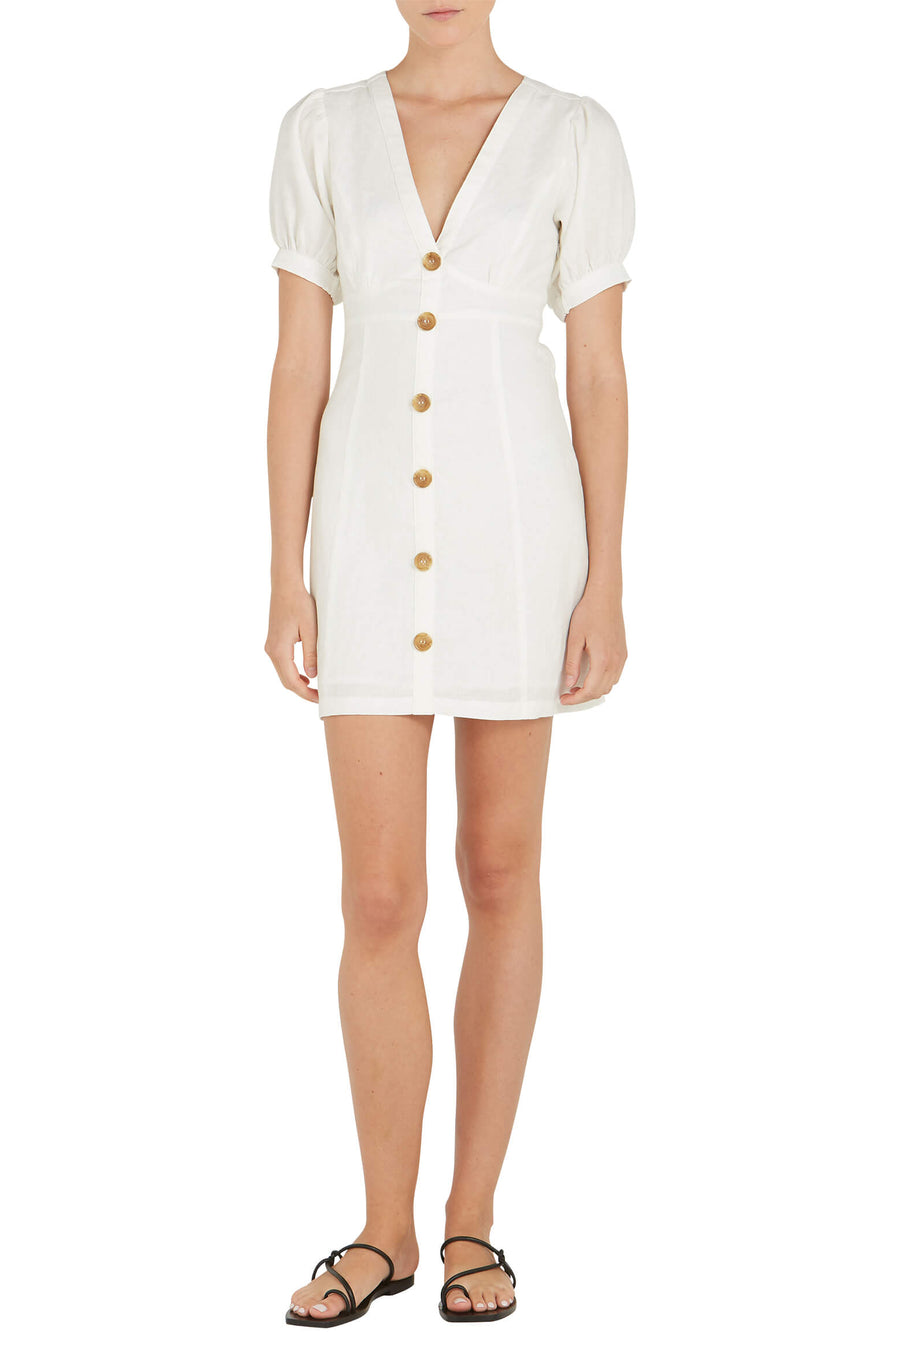 Hansen & Gretel Theodore Linen Dress from The New Trend